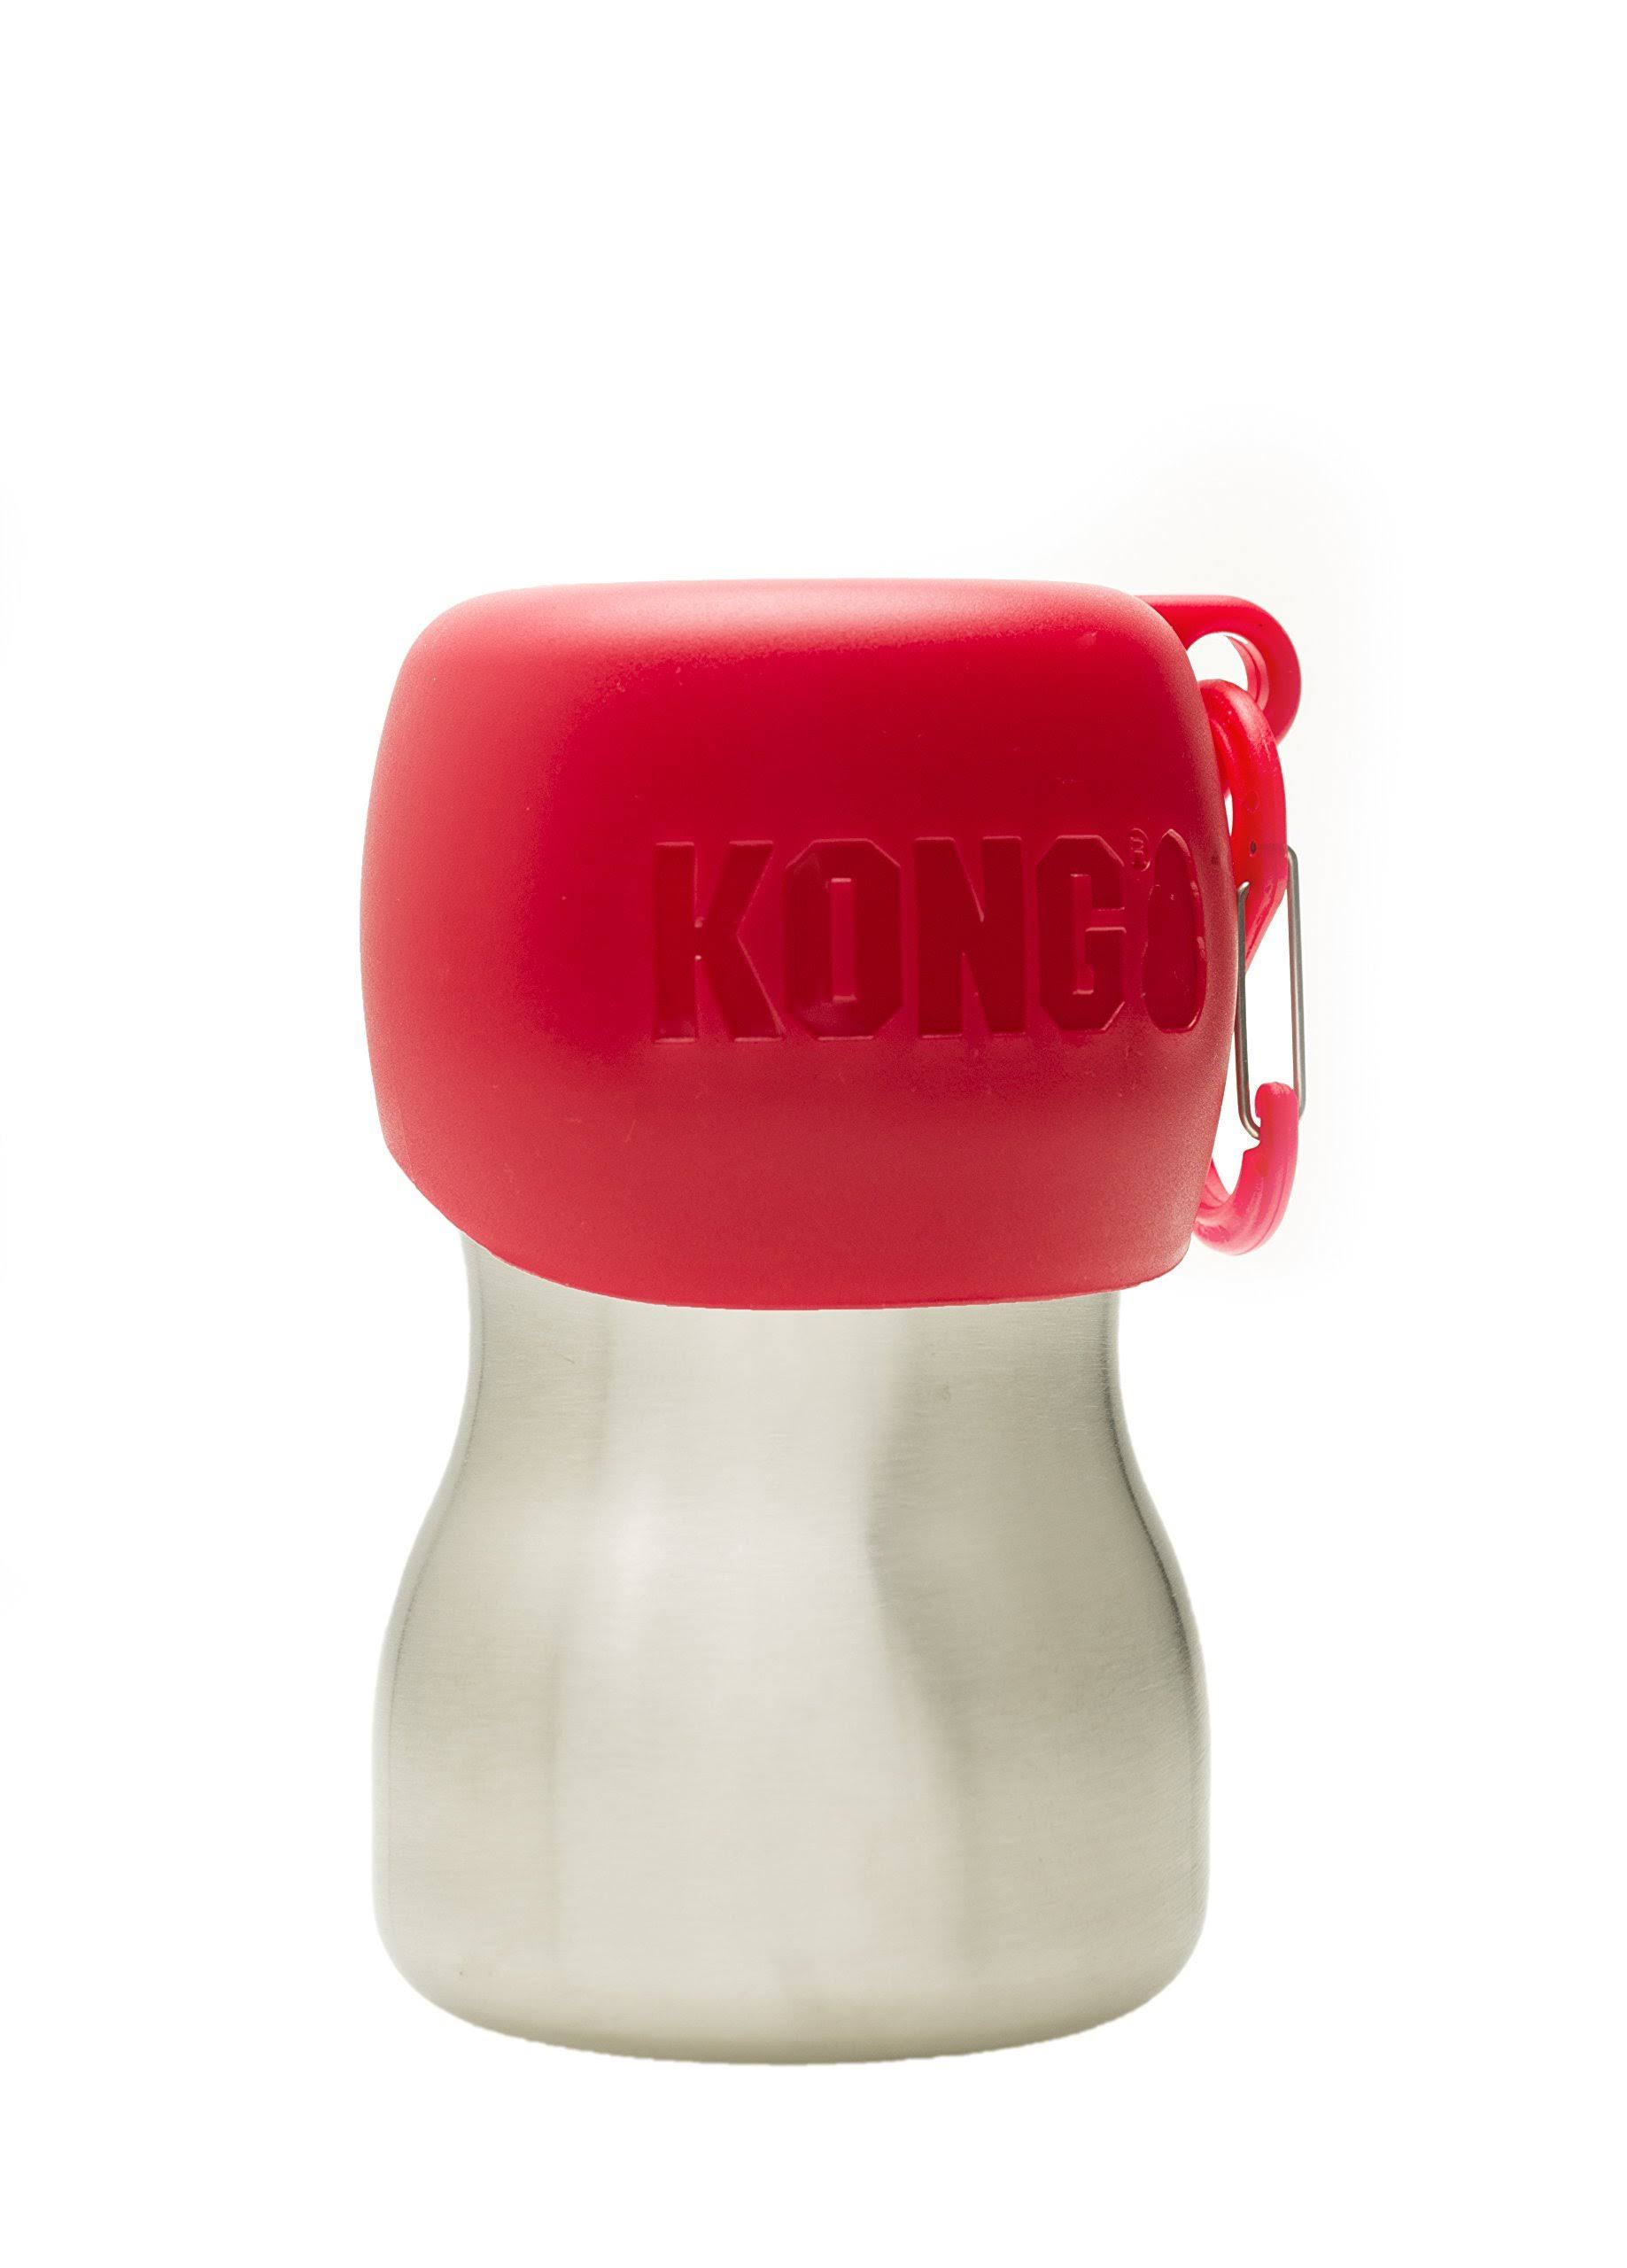 Kong - 9.5 oz Stainless Steel Dog Water Bottle - Red